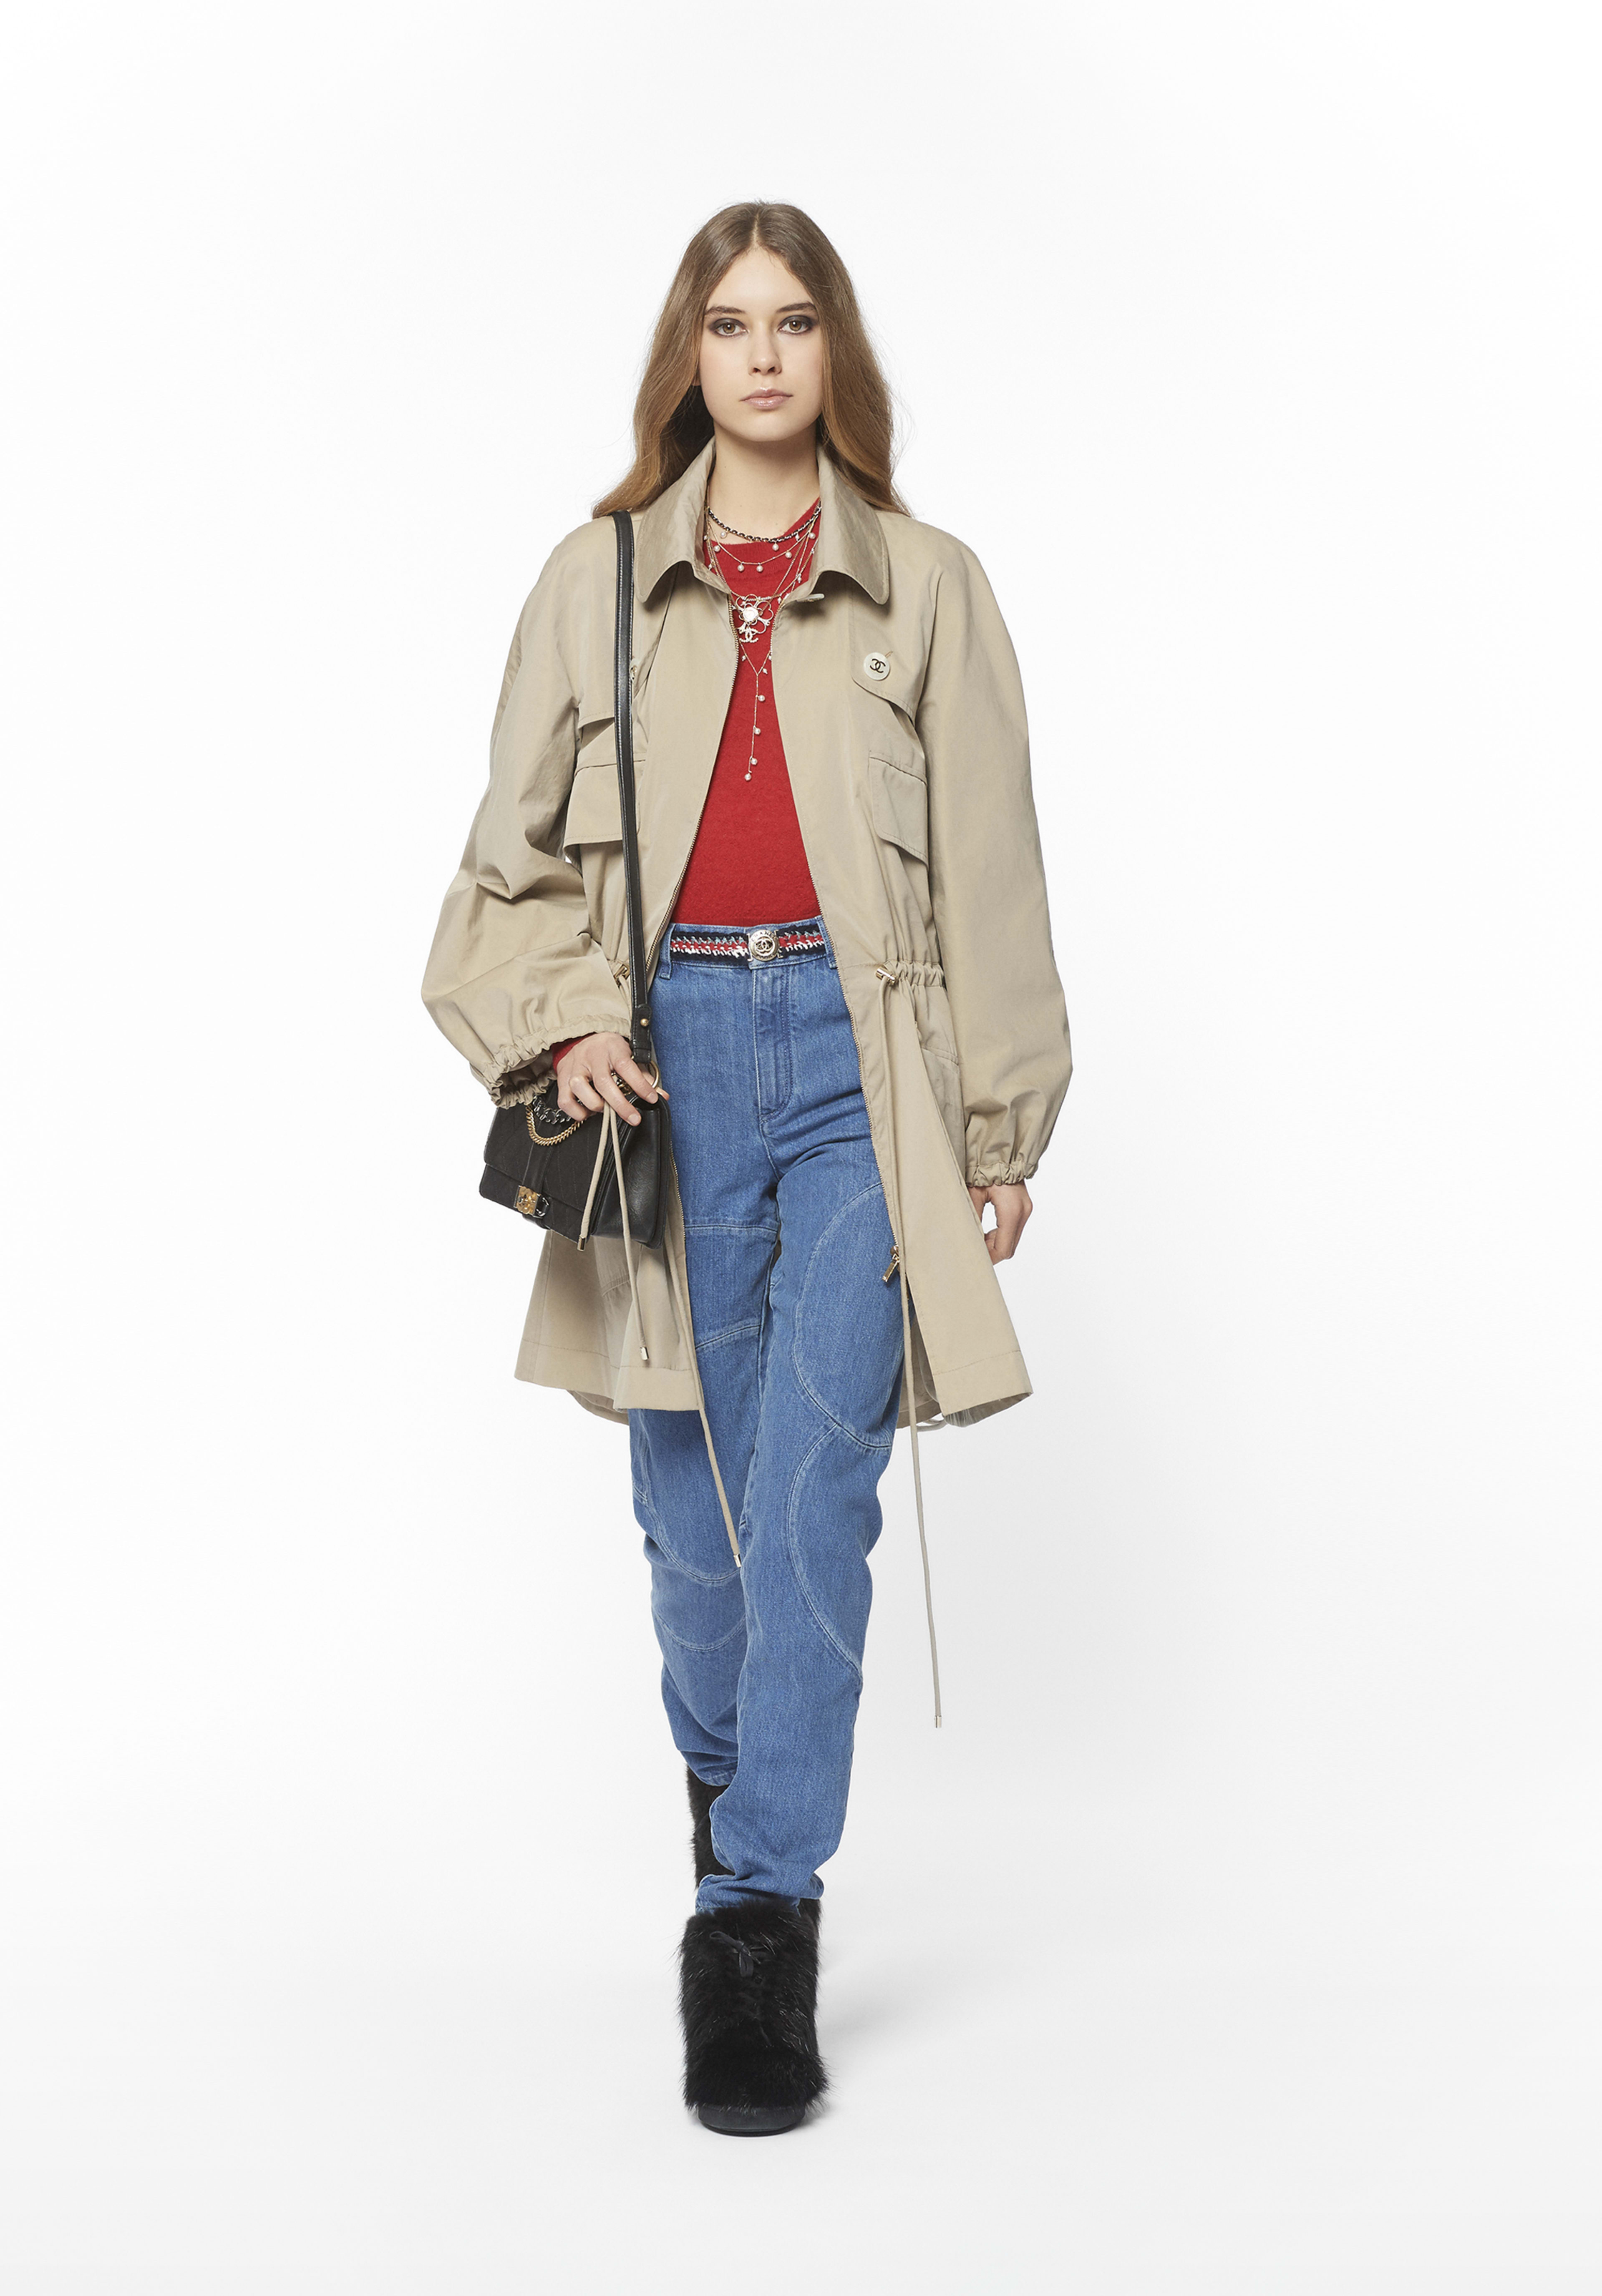 Look 6 - Fall-Winter 2018/19 Pre-collection